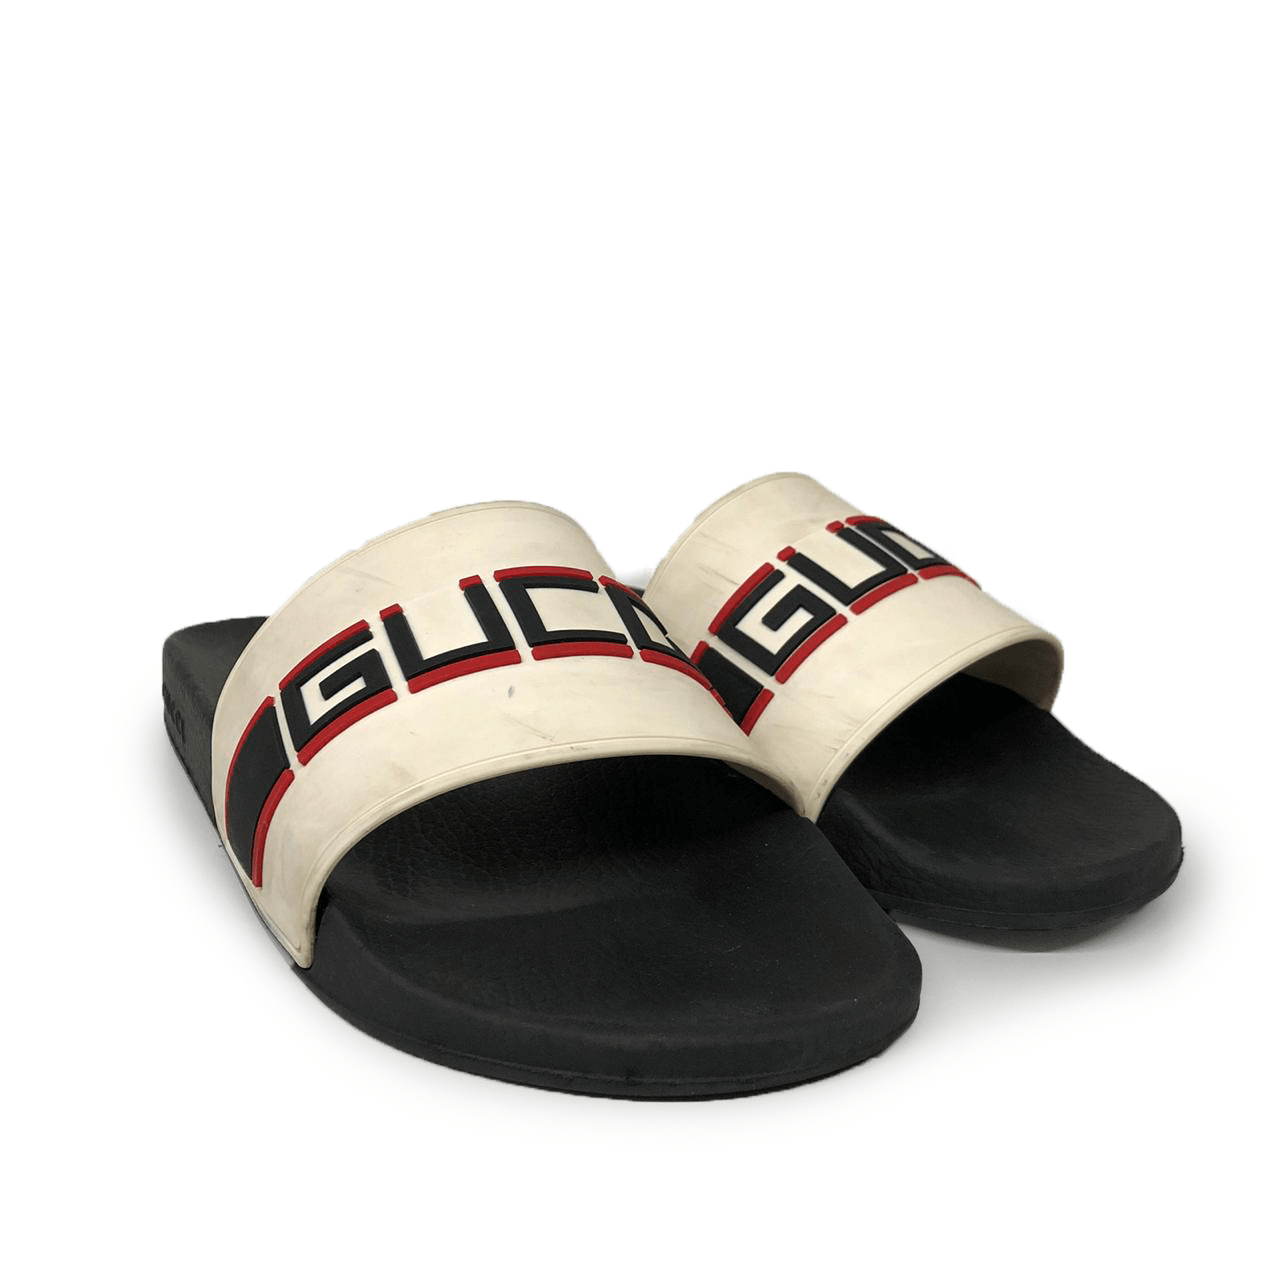 Gucci Black & White Stripe Rubber Men's Slide Sandal